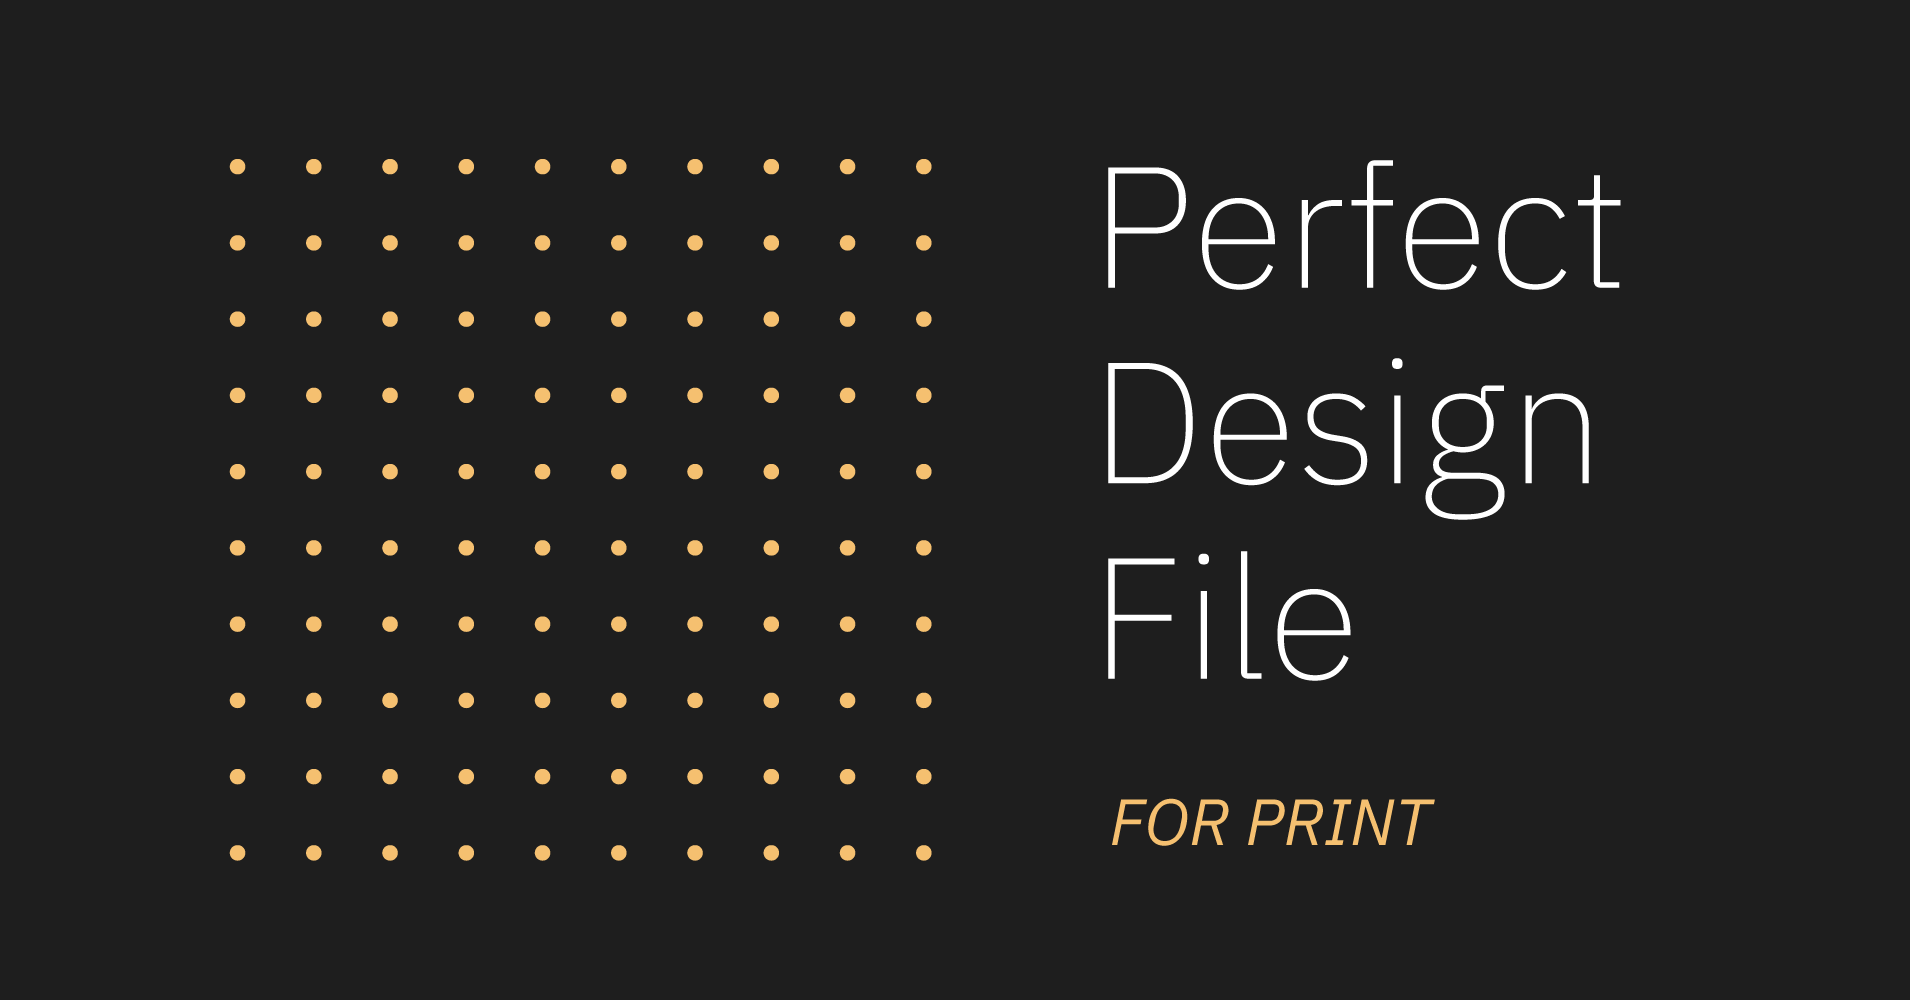 Preparing the Perfect Design File for Print